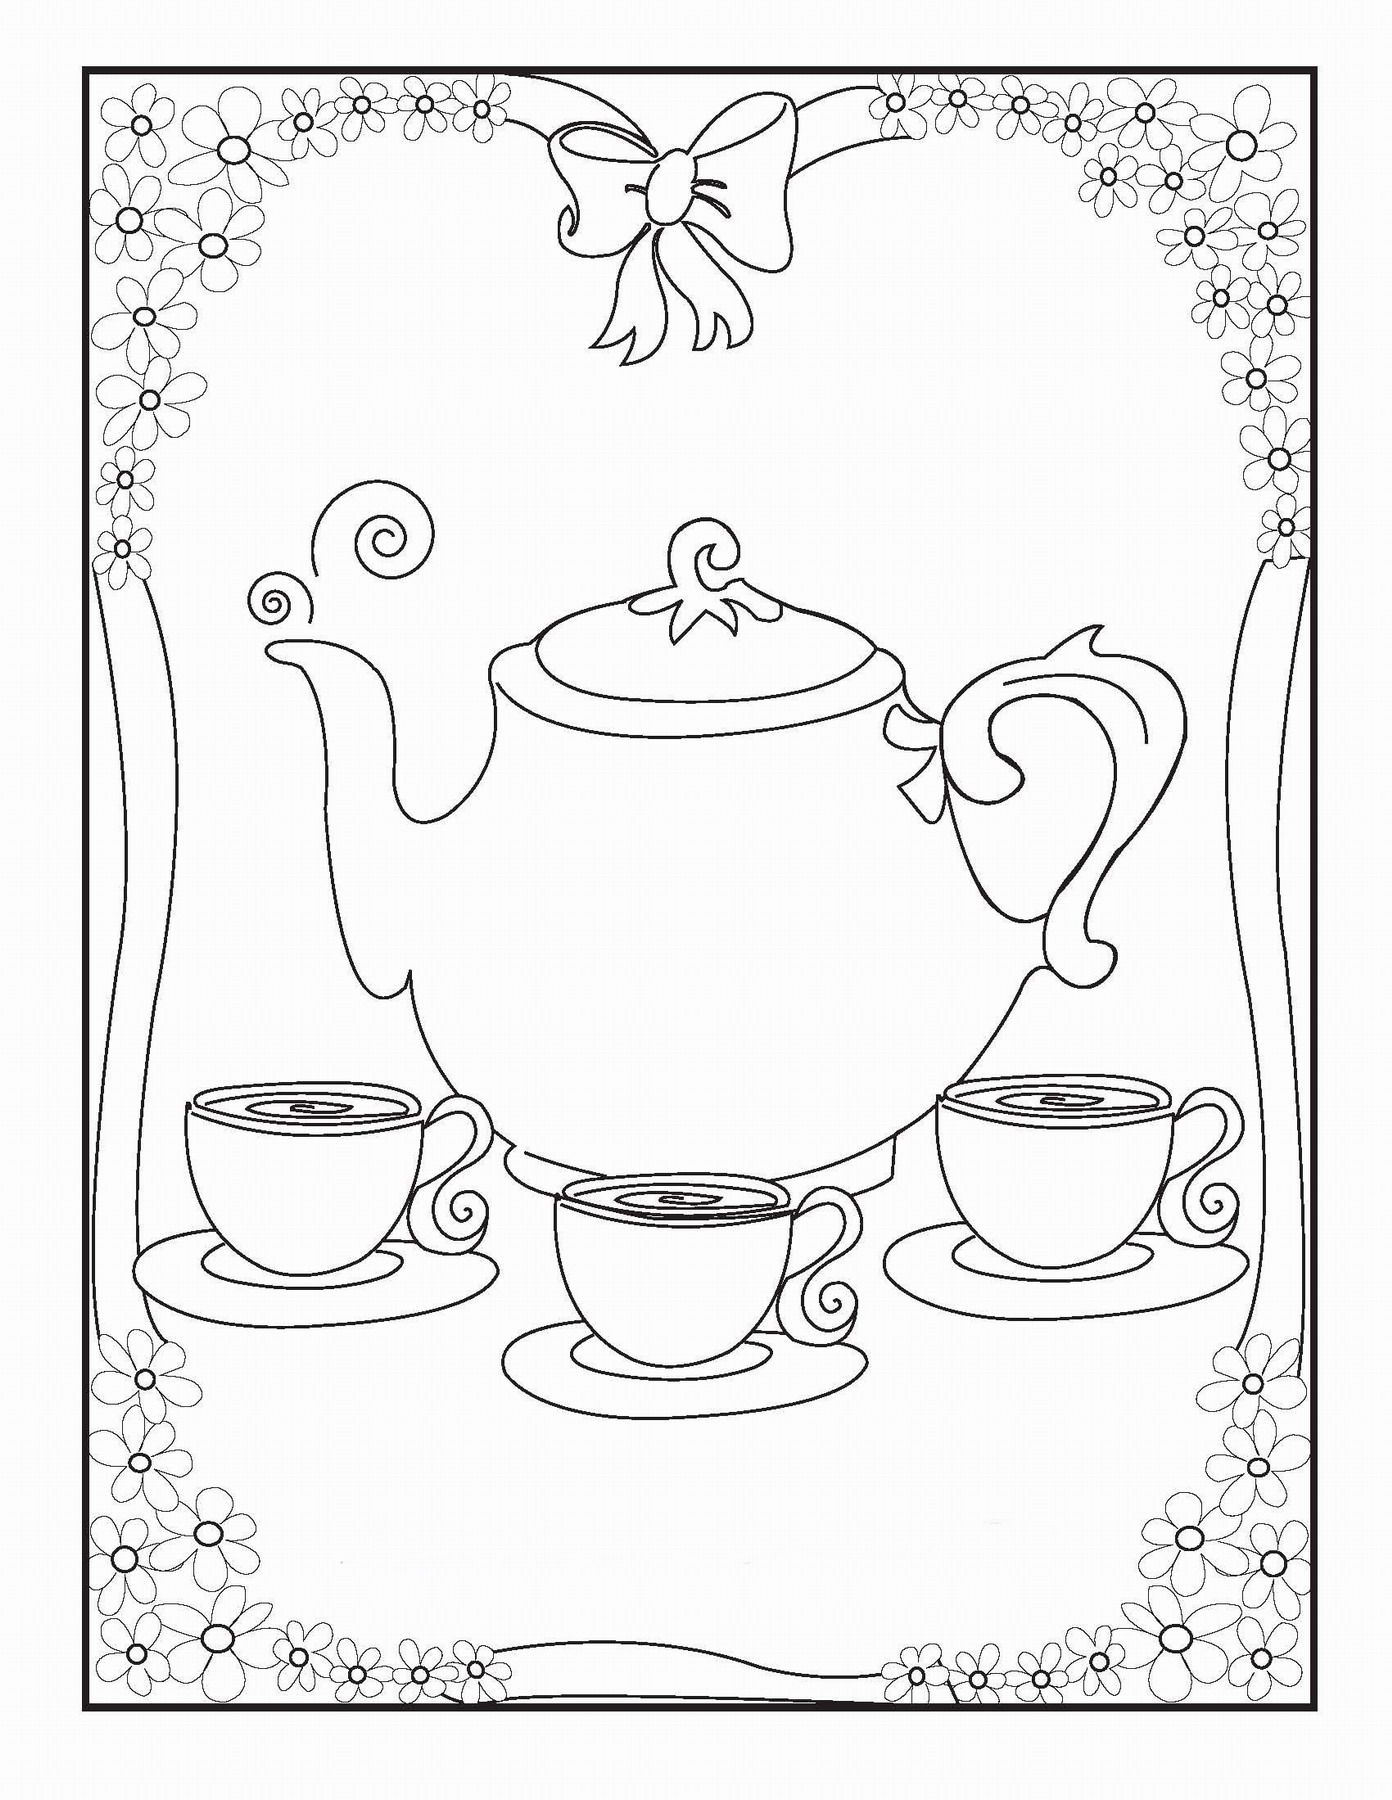 tea party coloring pages | lily tea party | pinterest | coloring ... - Princess Tea Party Coloring Pages